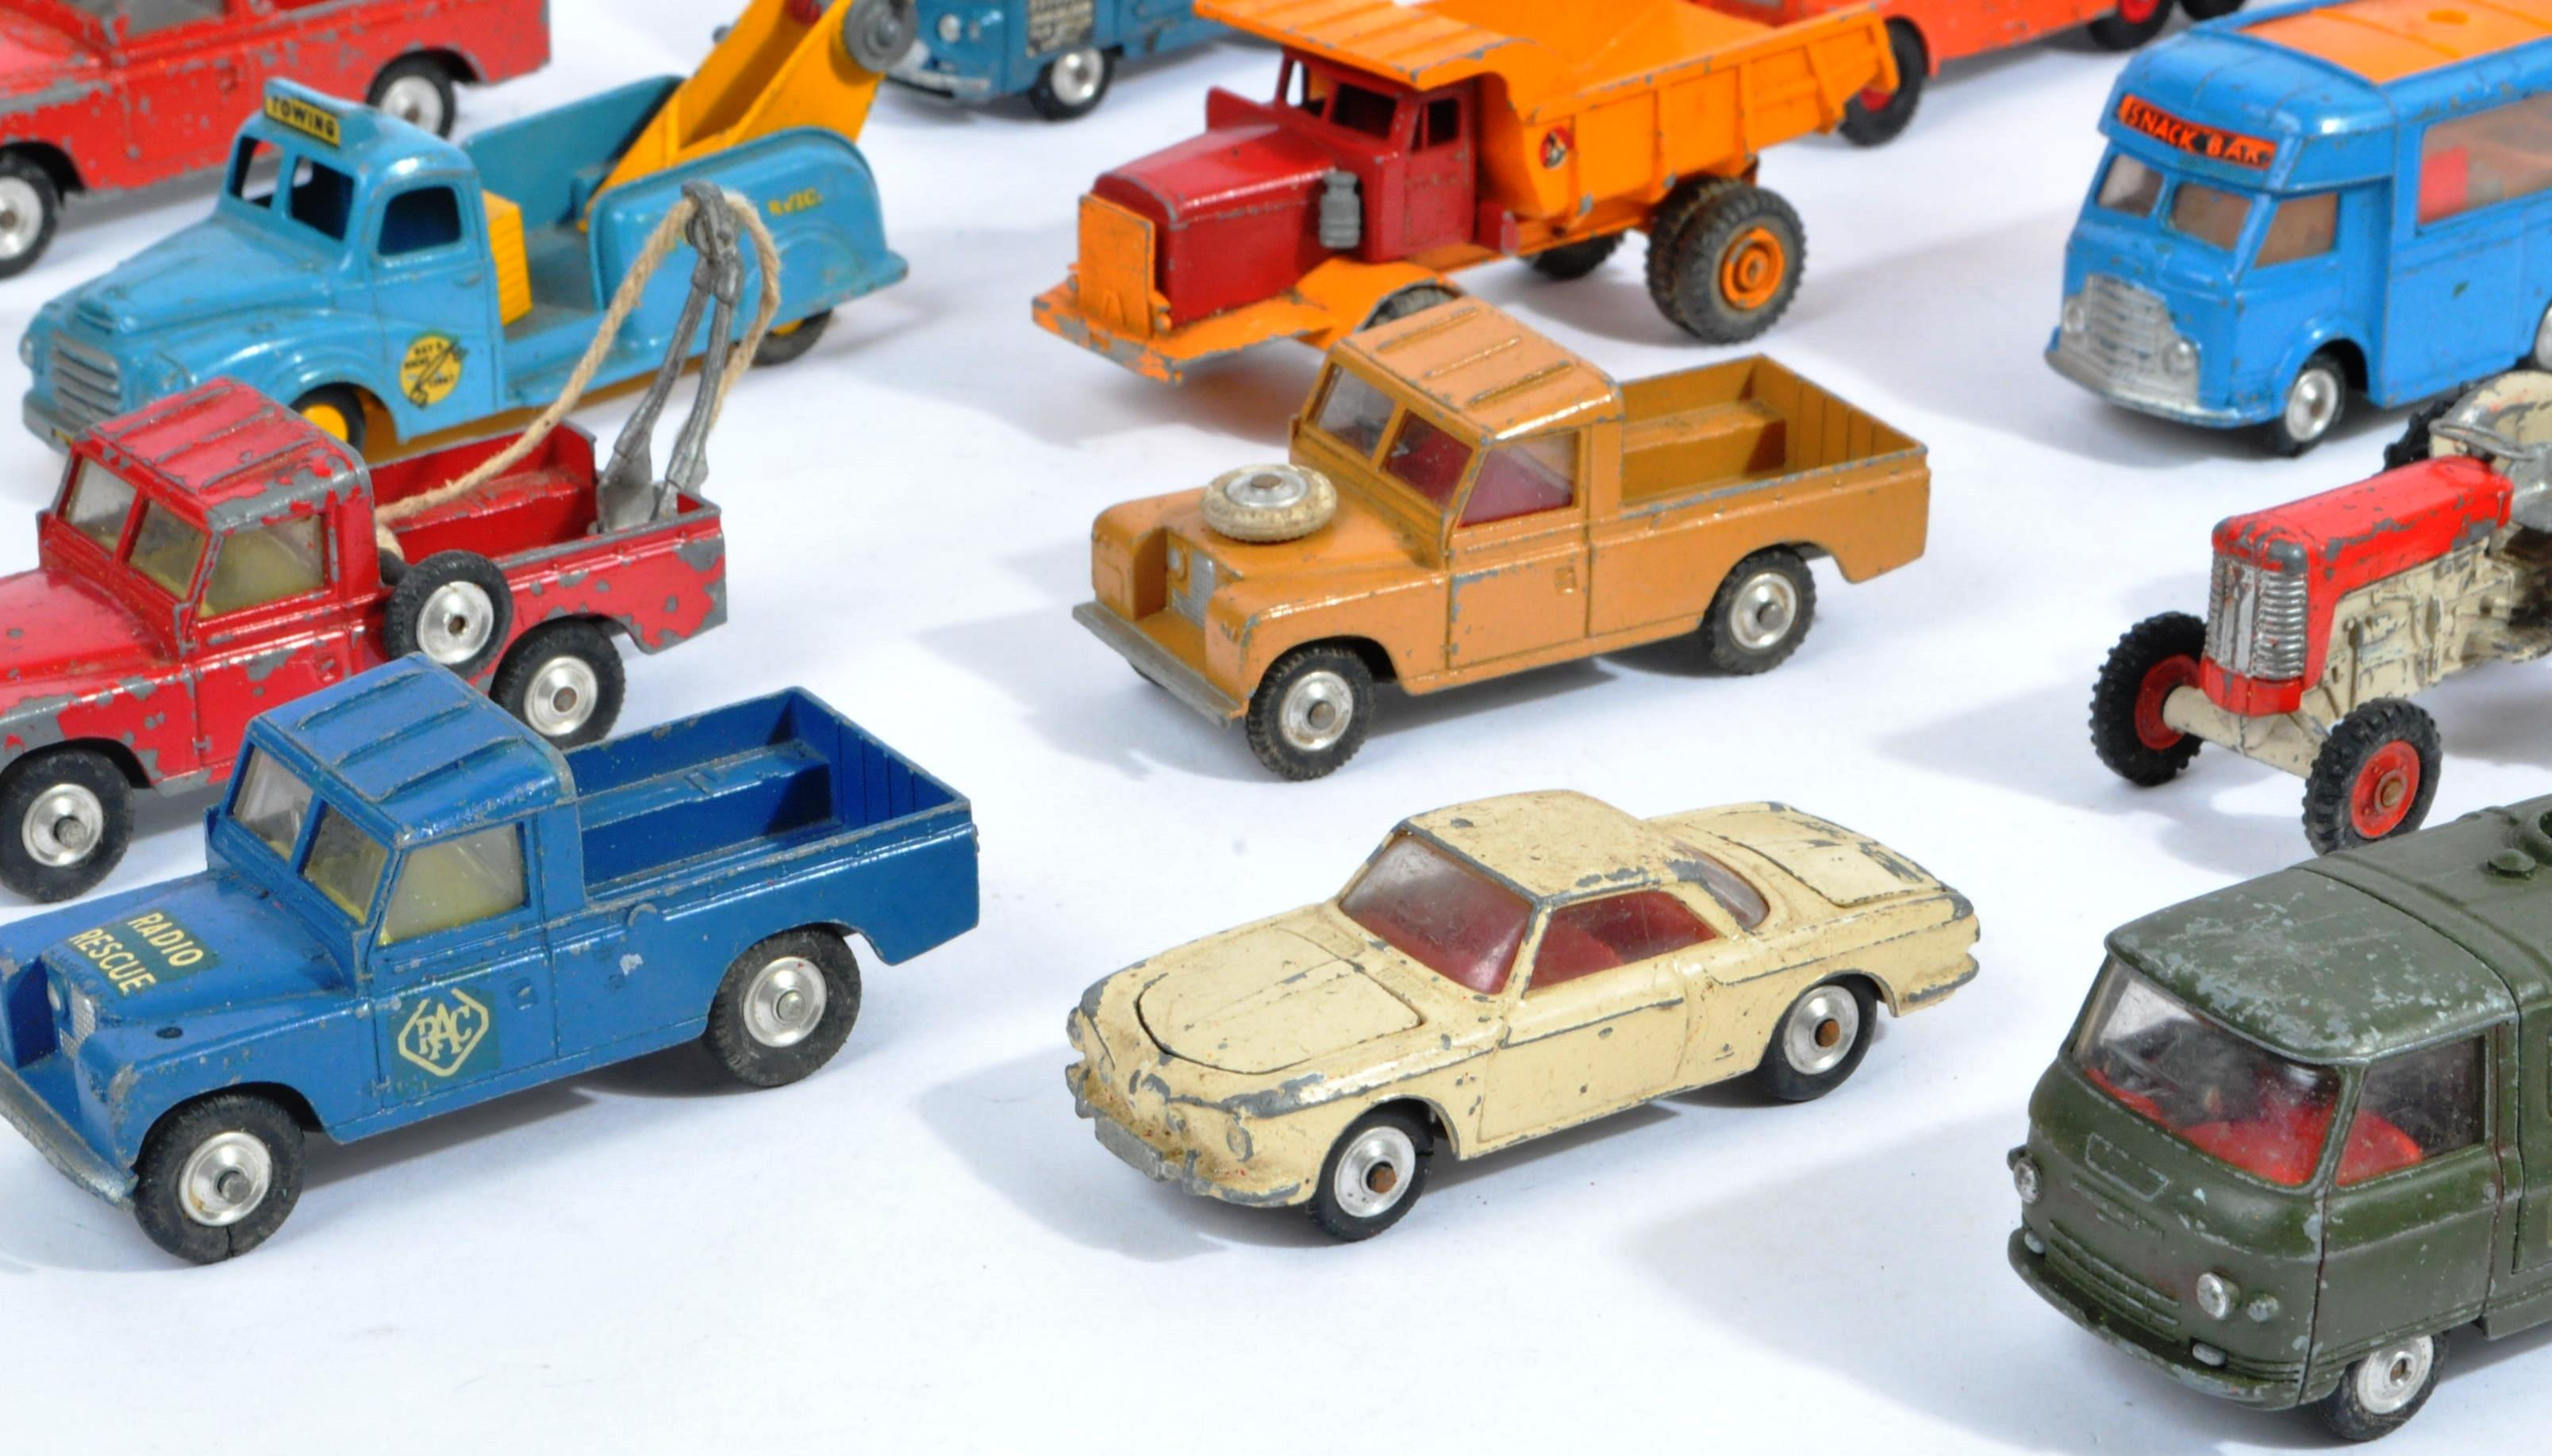 COLLECTION OF VINTAGE CORGI & DINKY TOYS DIECAST MODELS - Image 8 of 10